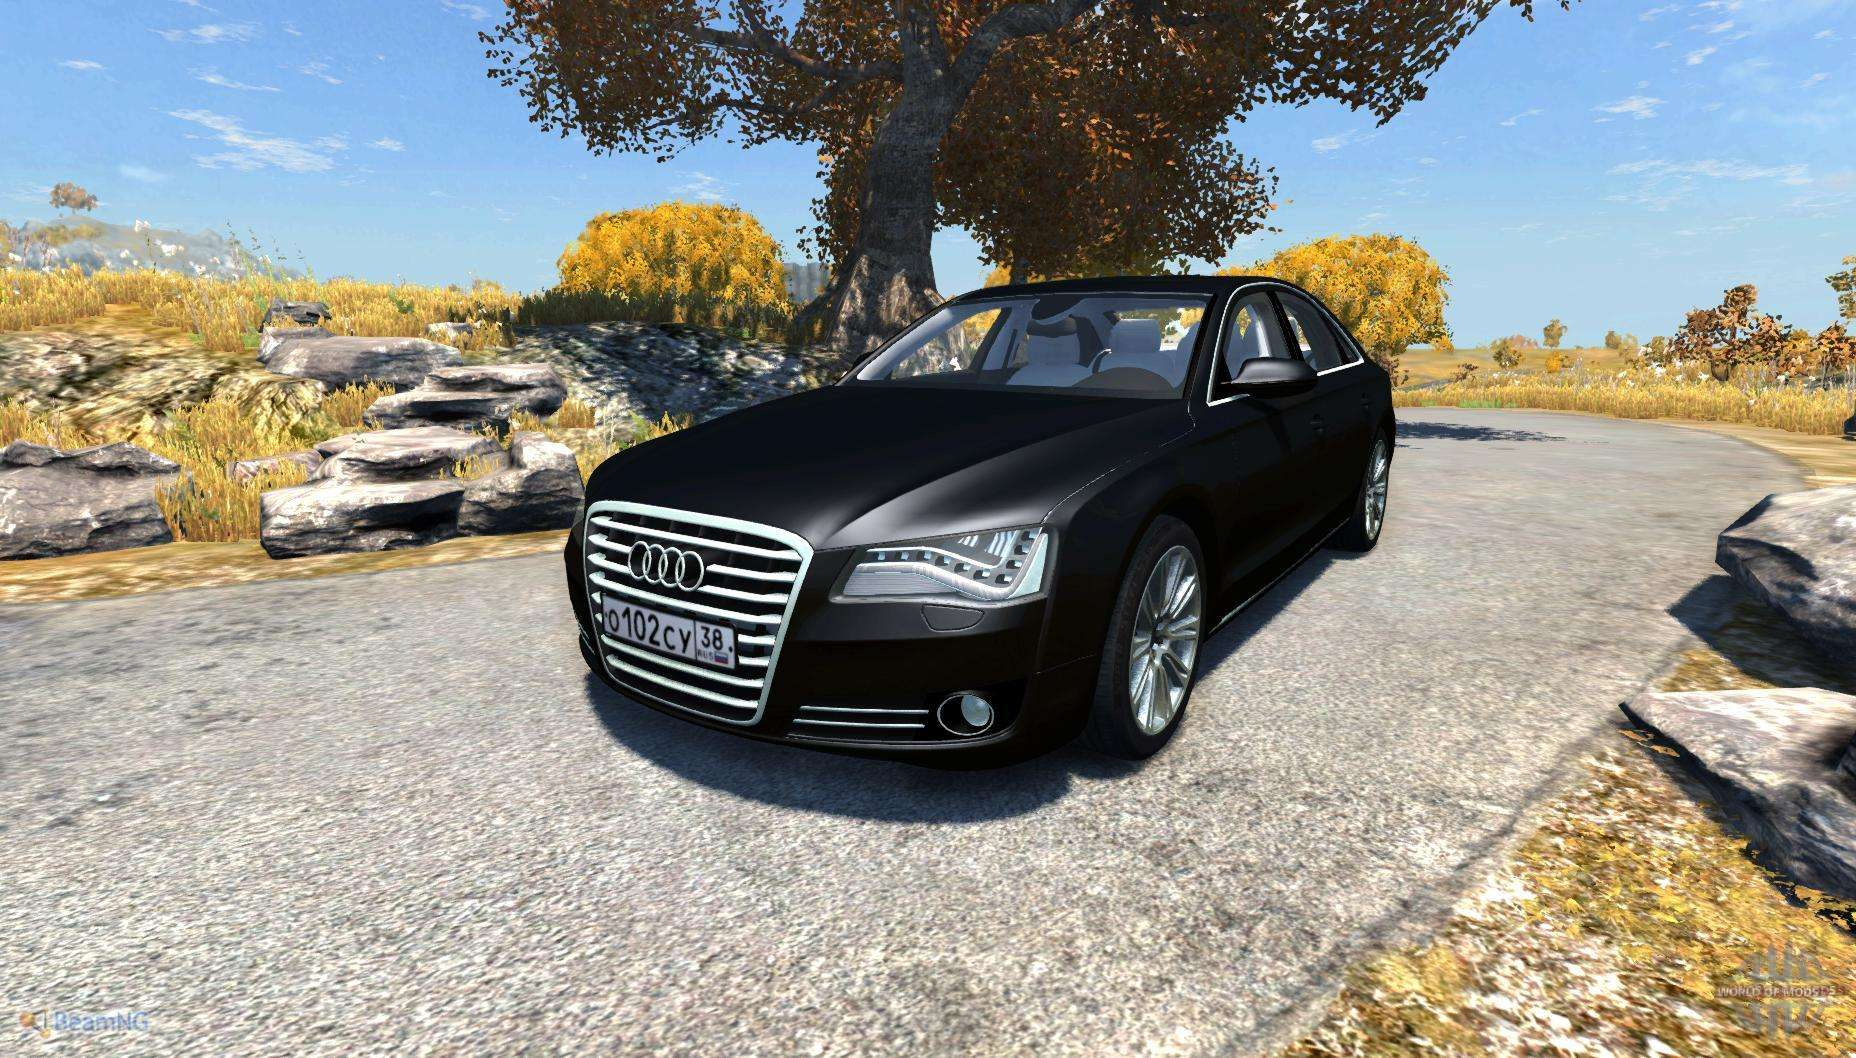 Cars for BeamNG Drive download for free